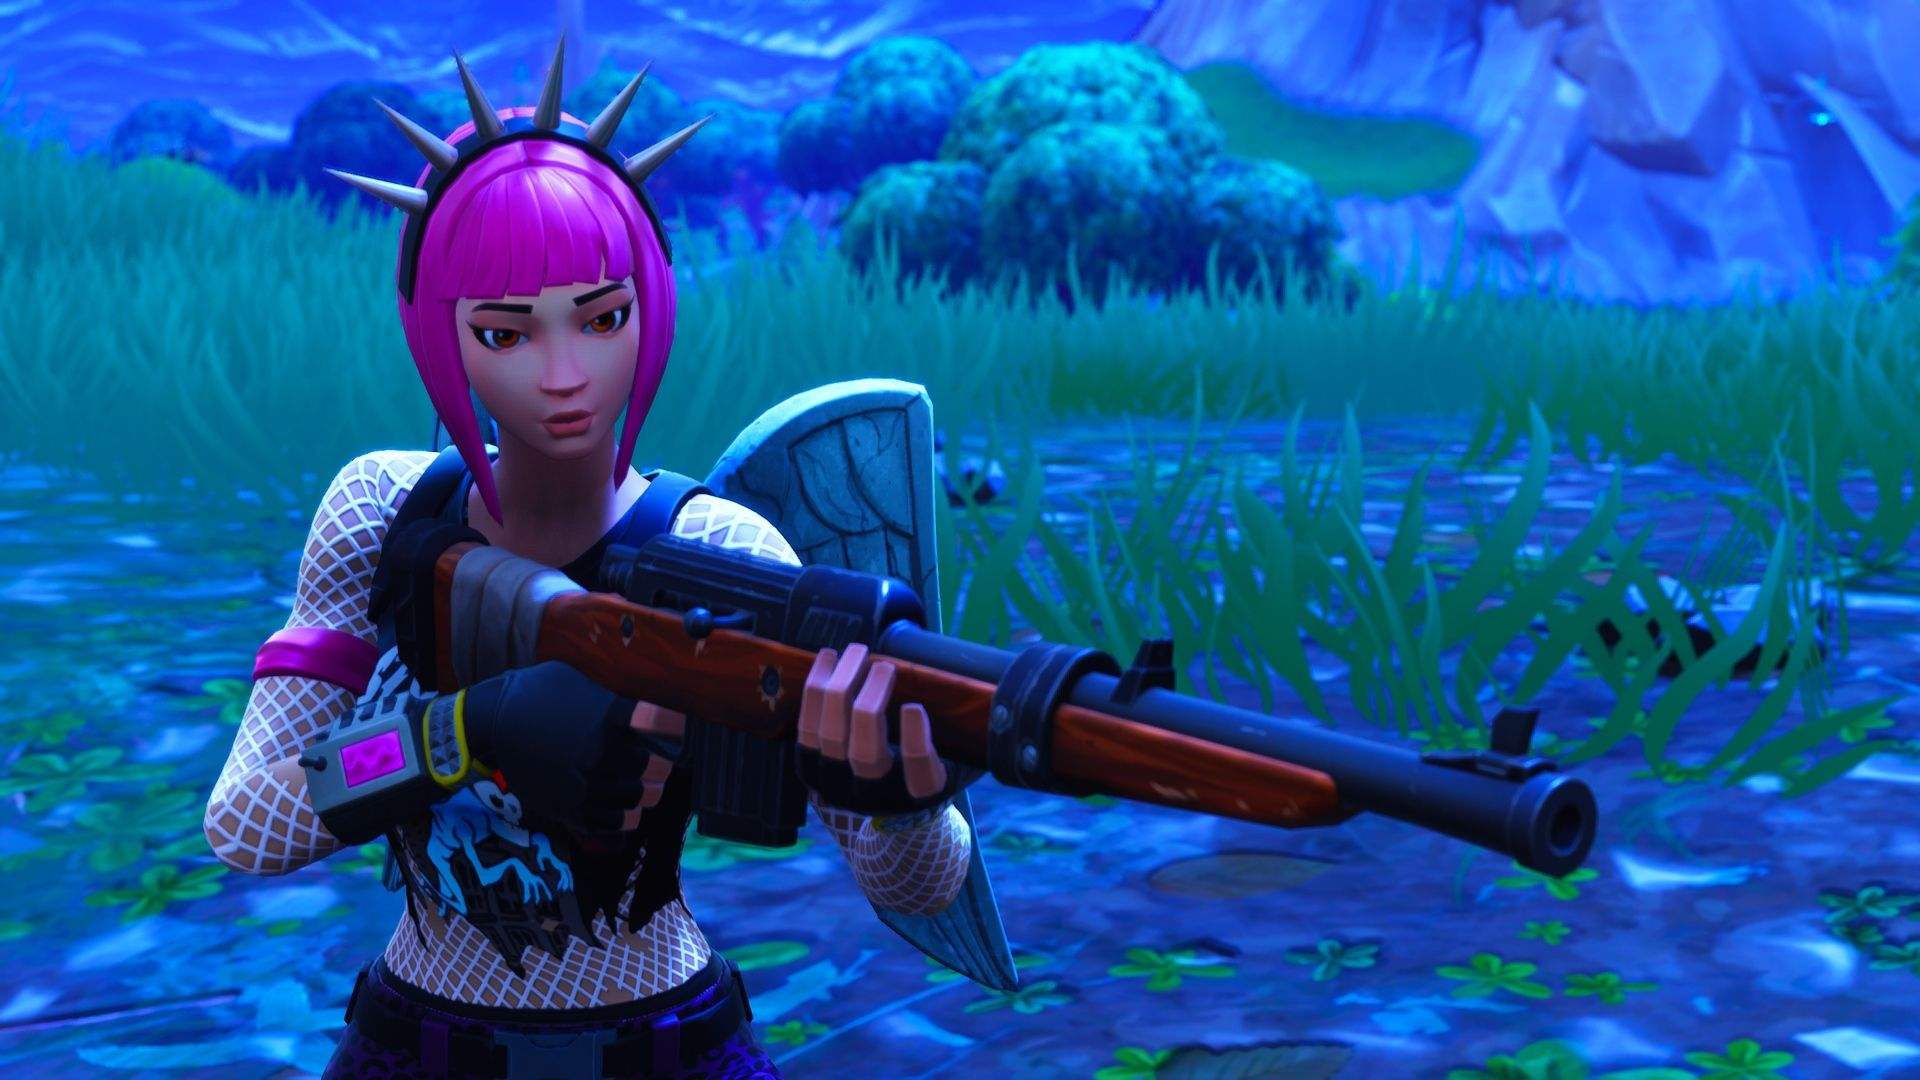 Free download 1920x1080 HD Wallpaper of Power Chord ...